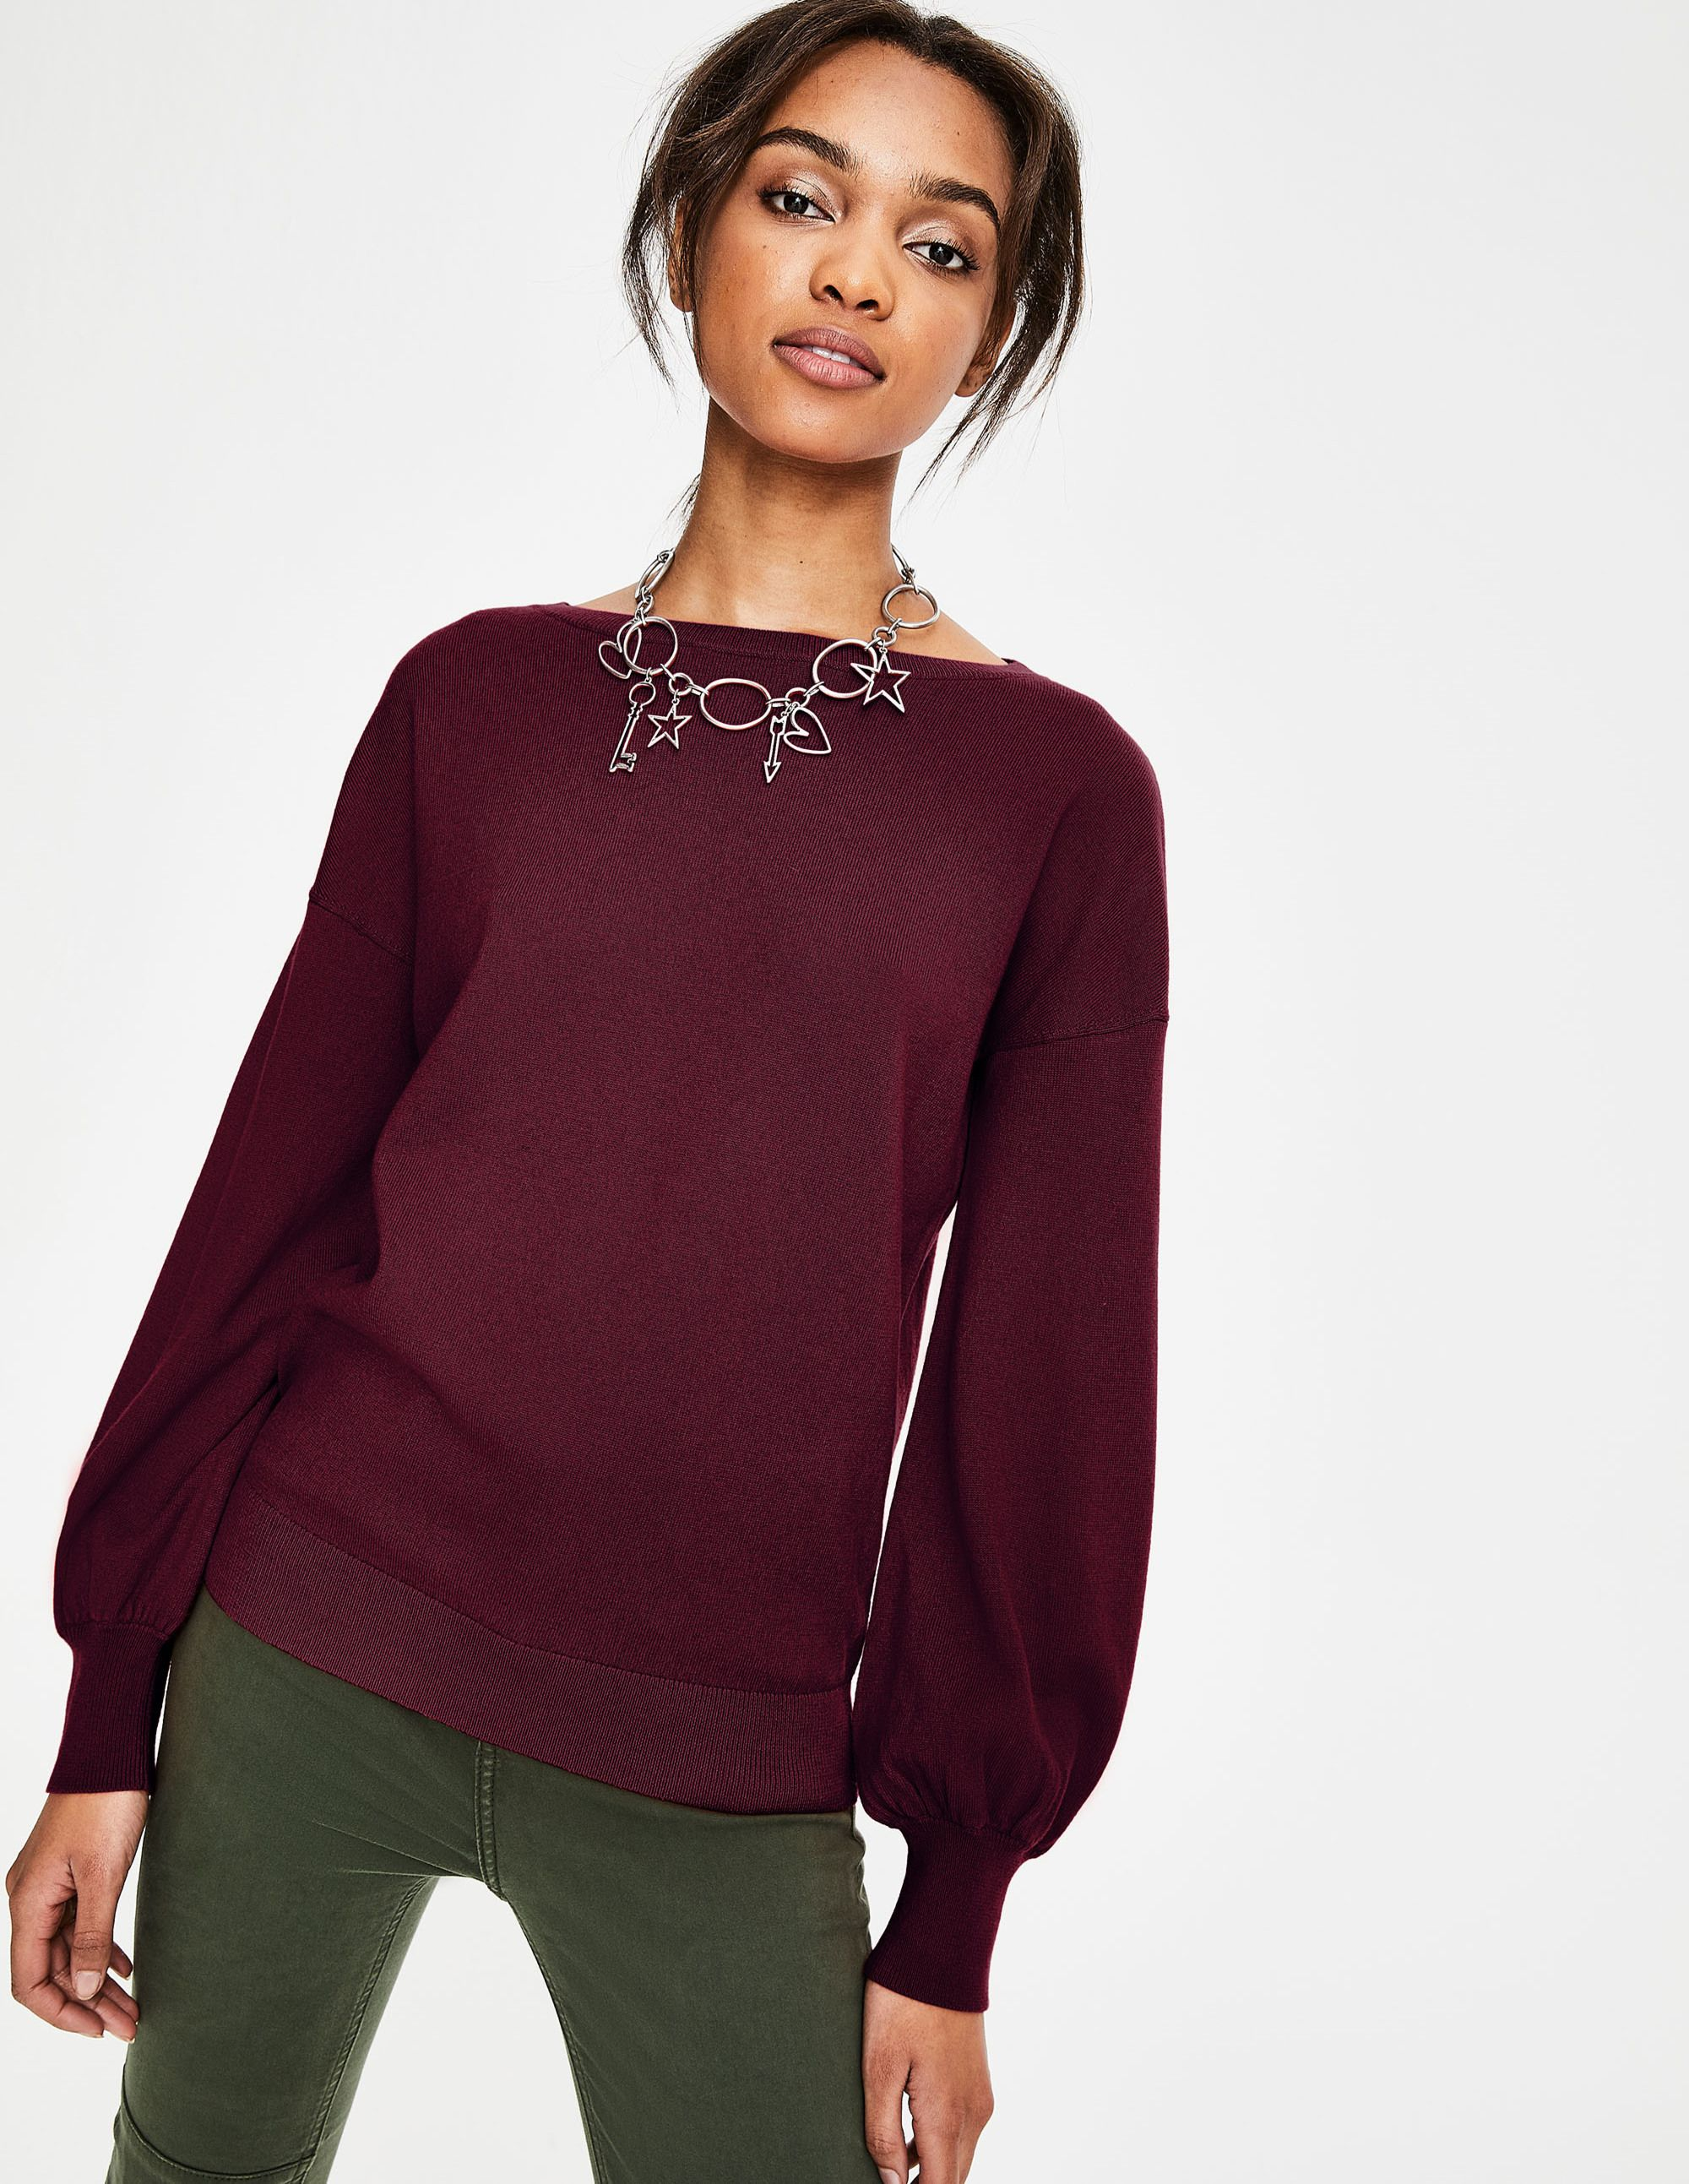 Muriel Pullover K0107 Pullover bei Boden | Costume jewelery